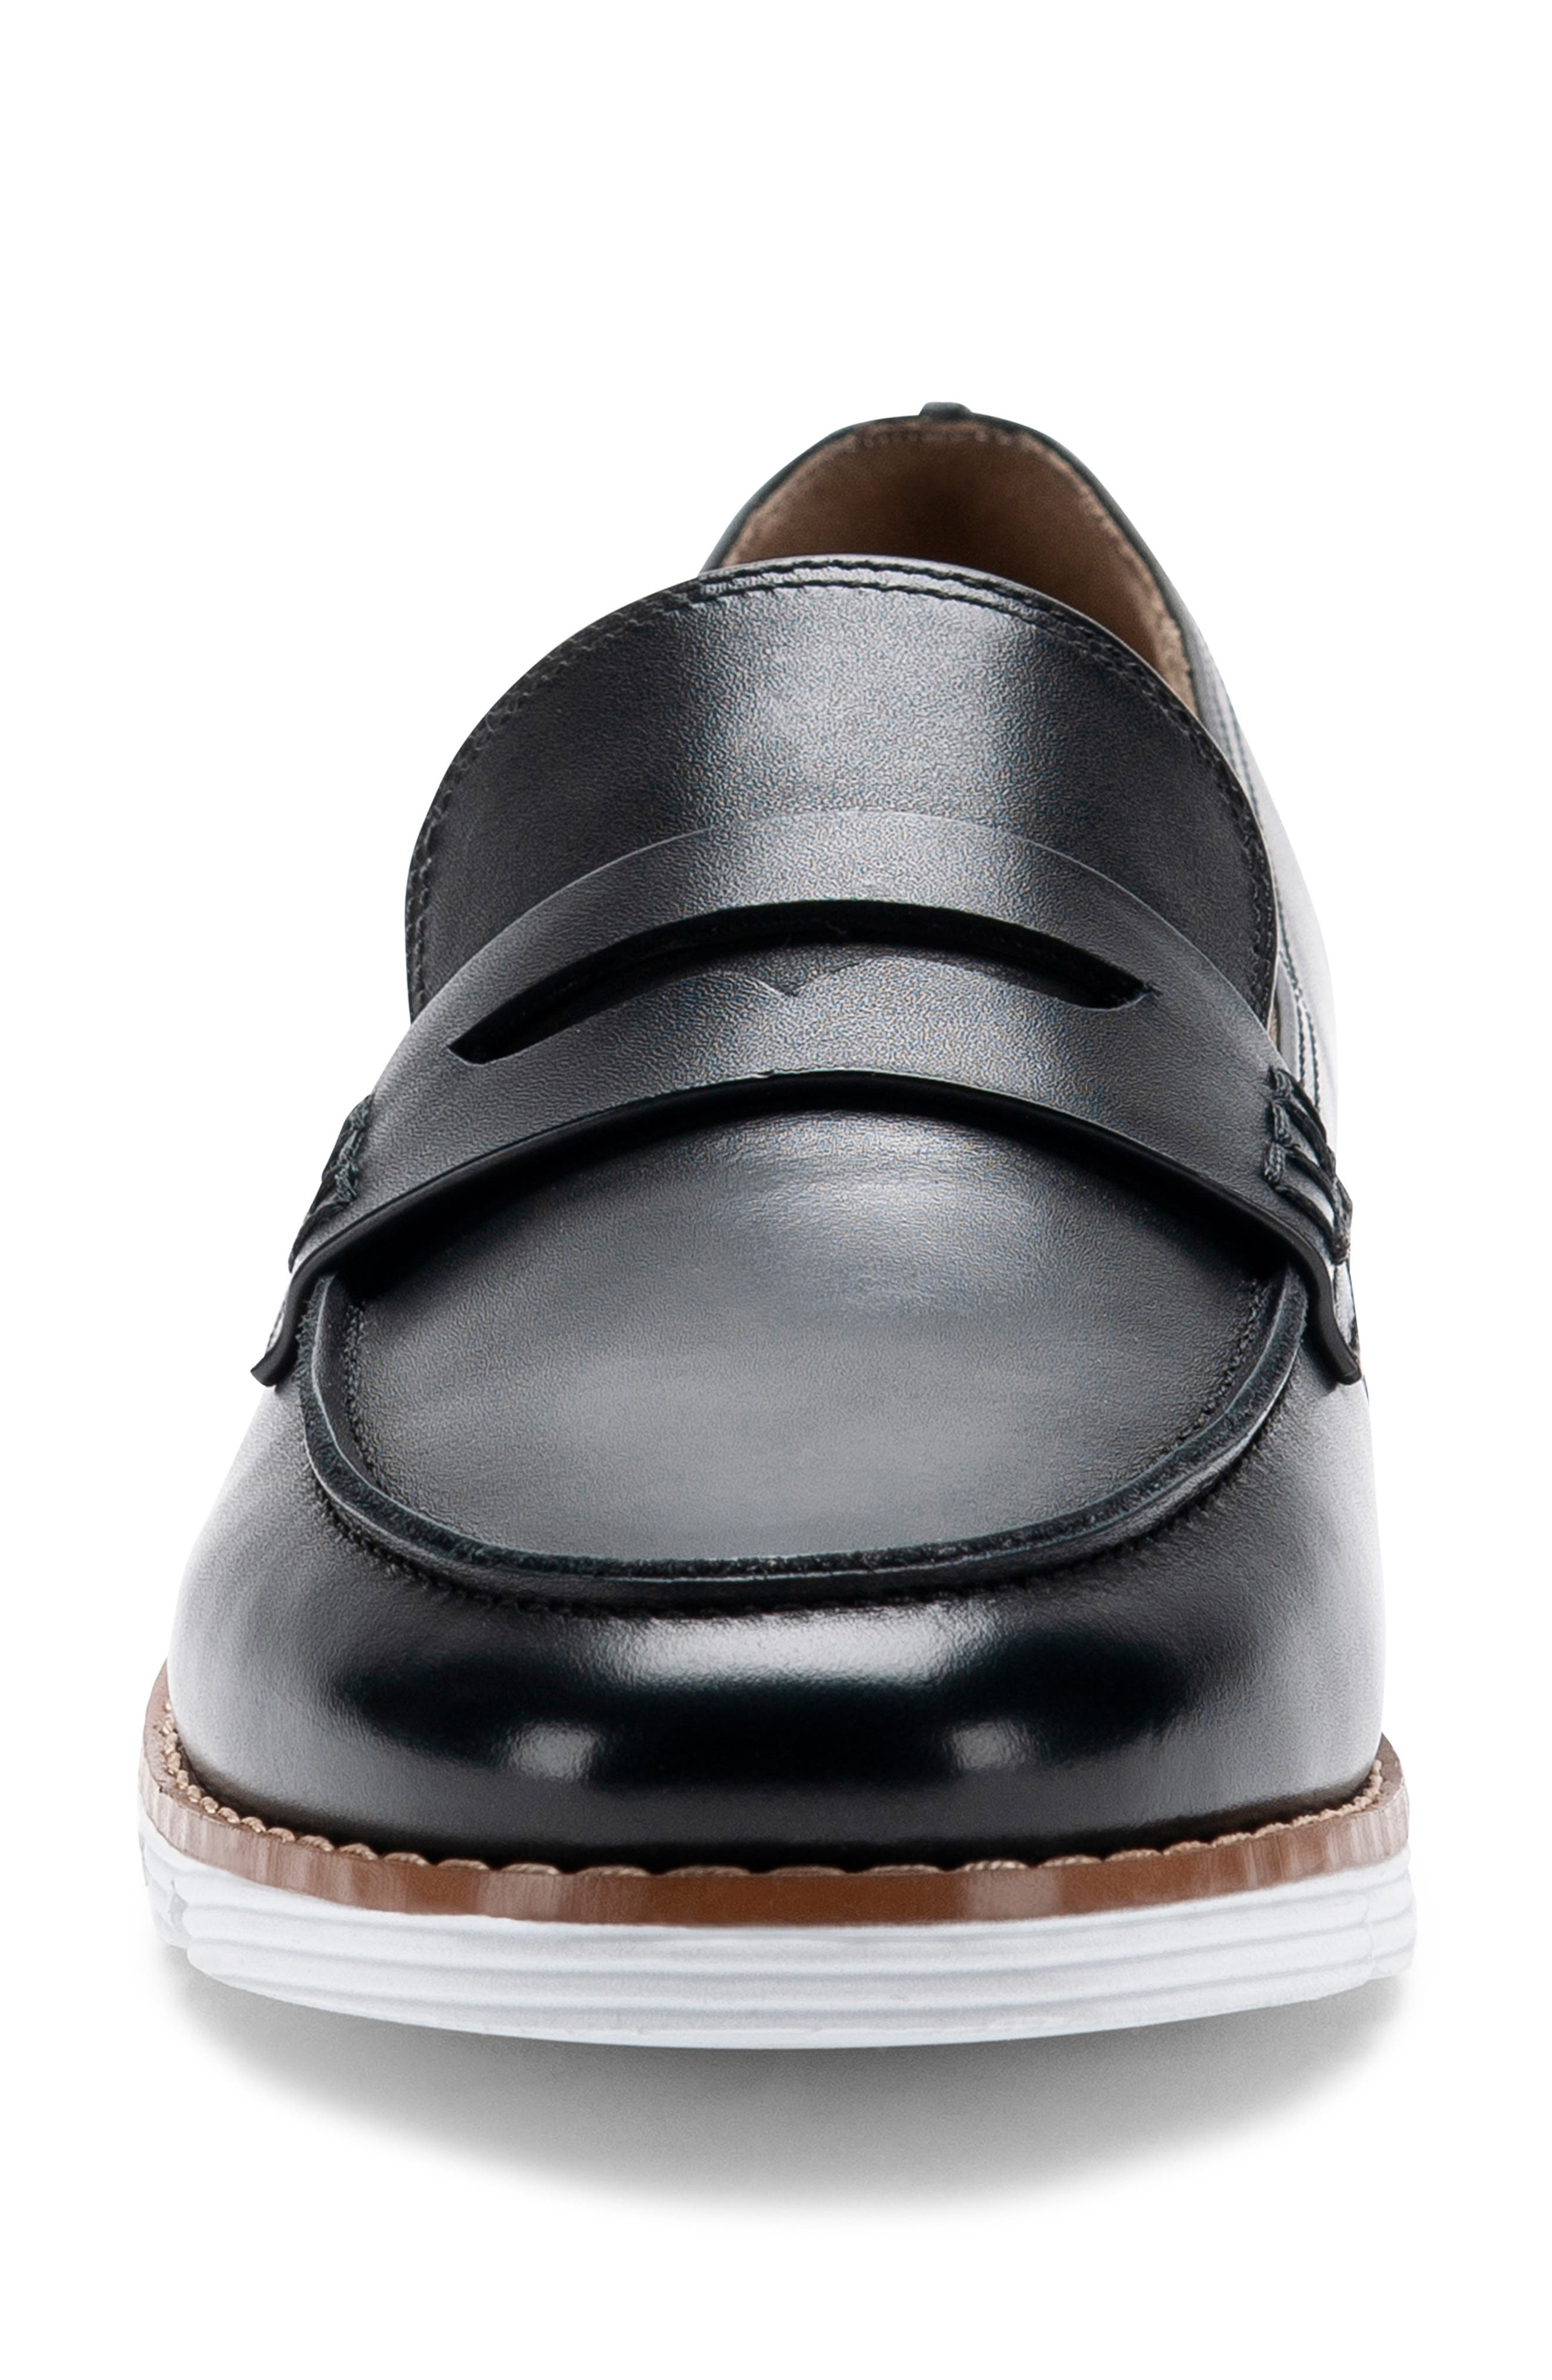 BLONDO, Waterproof Penny Loafer, Alternate thumbnail 4, color, BLACK LEATHER